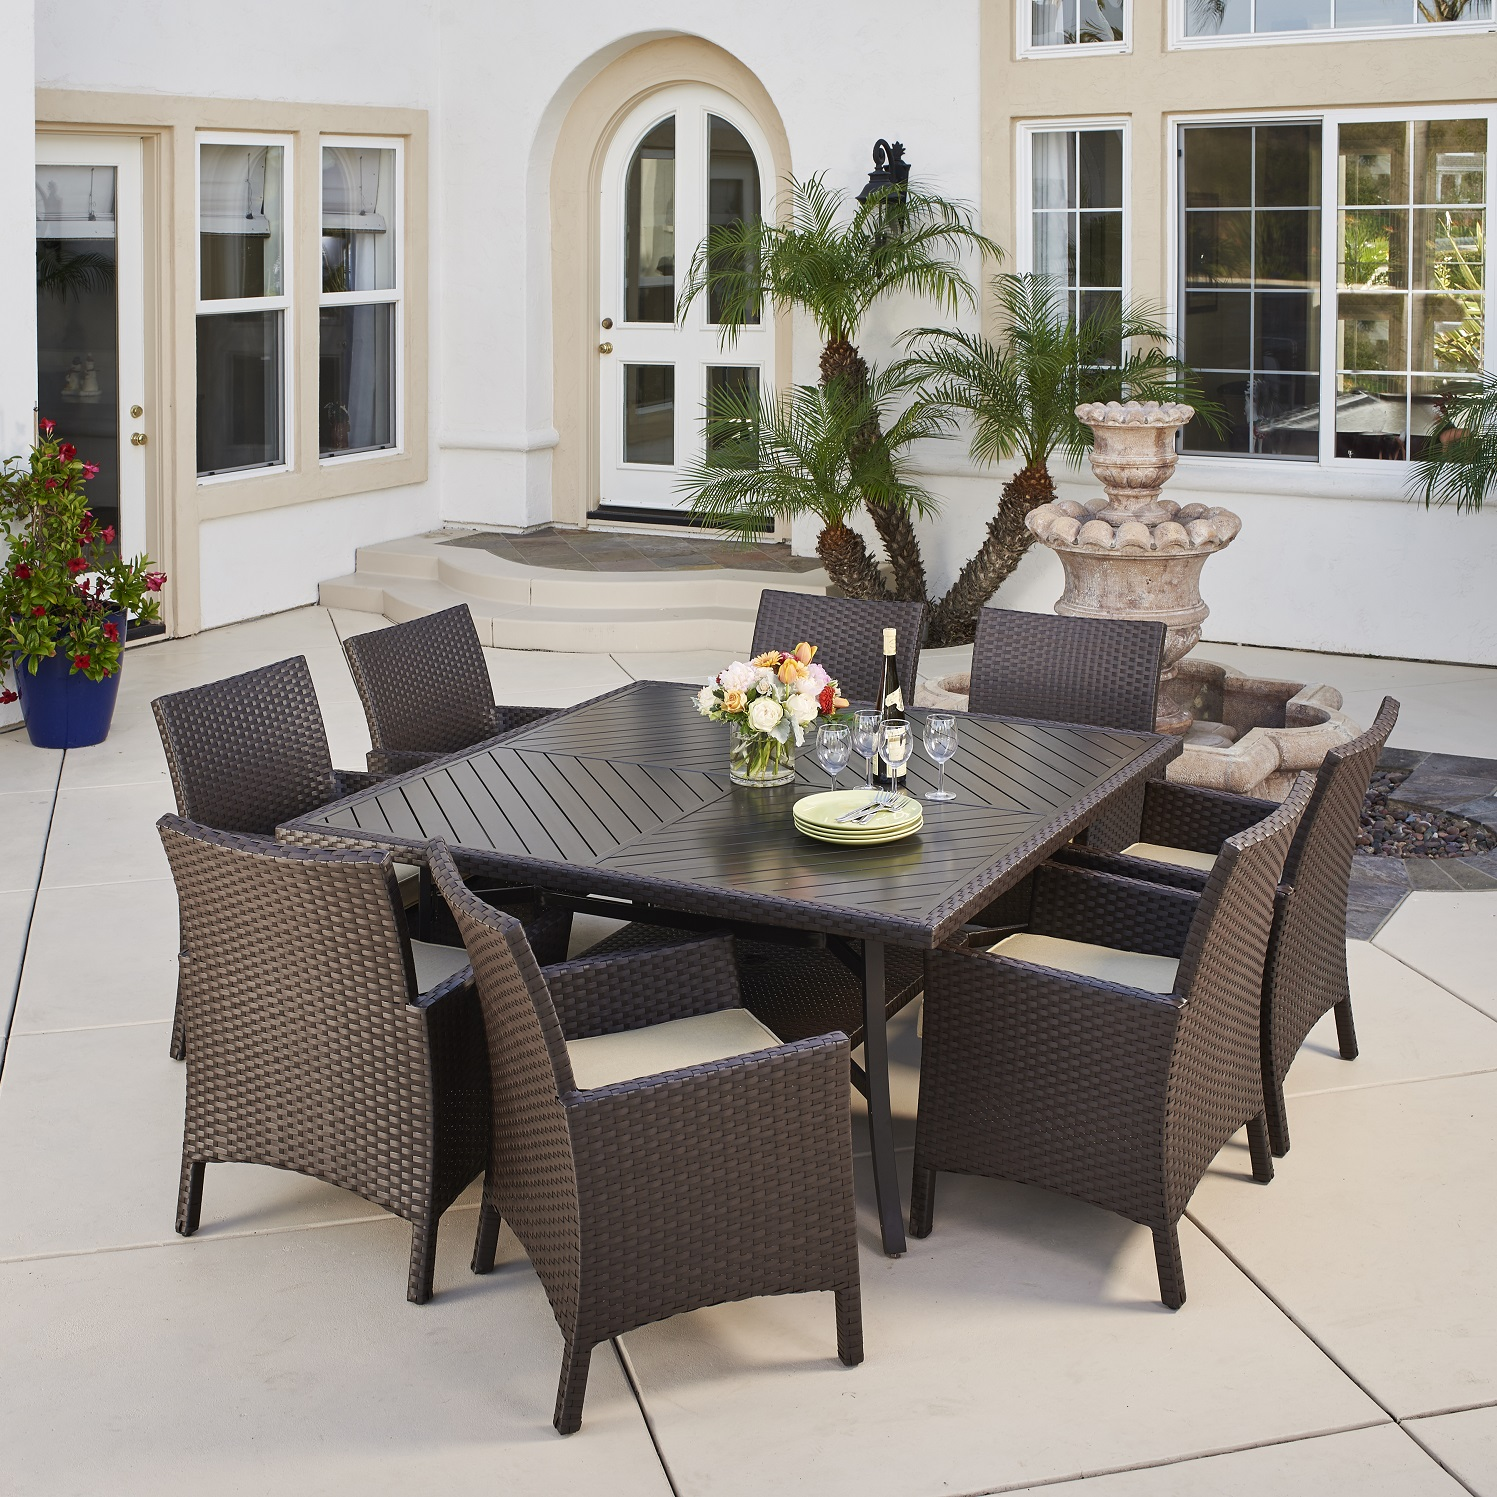 9 Piece Outdoor Dining Set Avalon Bay 9pc Dining Set Mission Hills Furniture